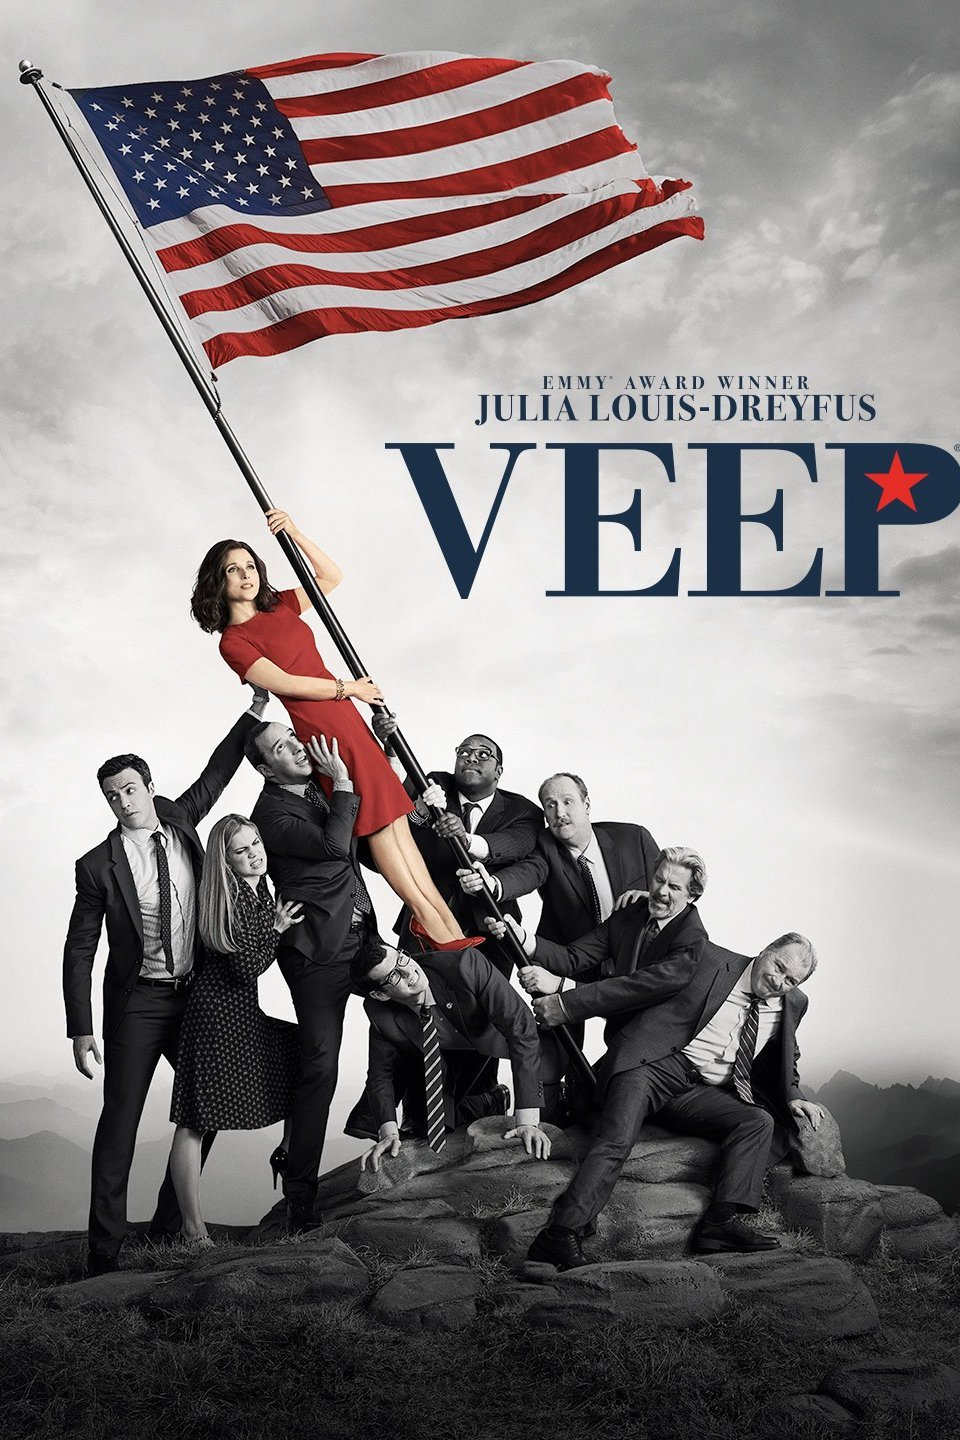 Veep Tv Series Download Season 6 Episode 10 HDTV Micromkv